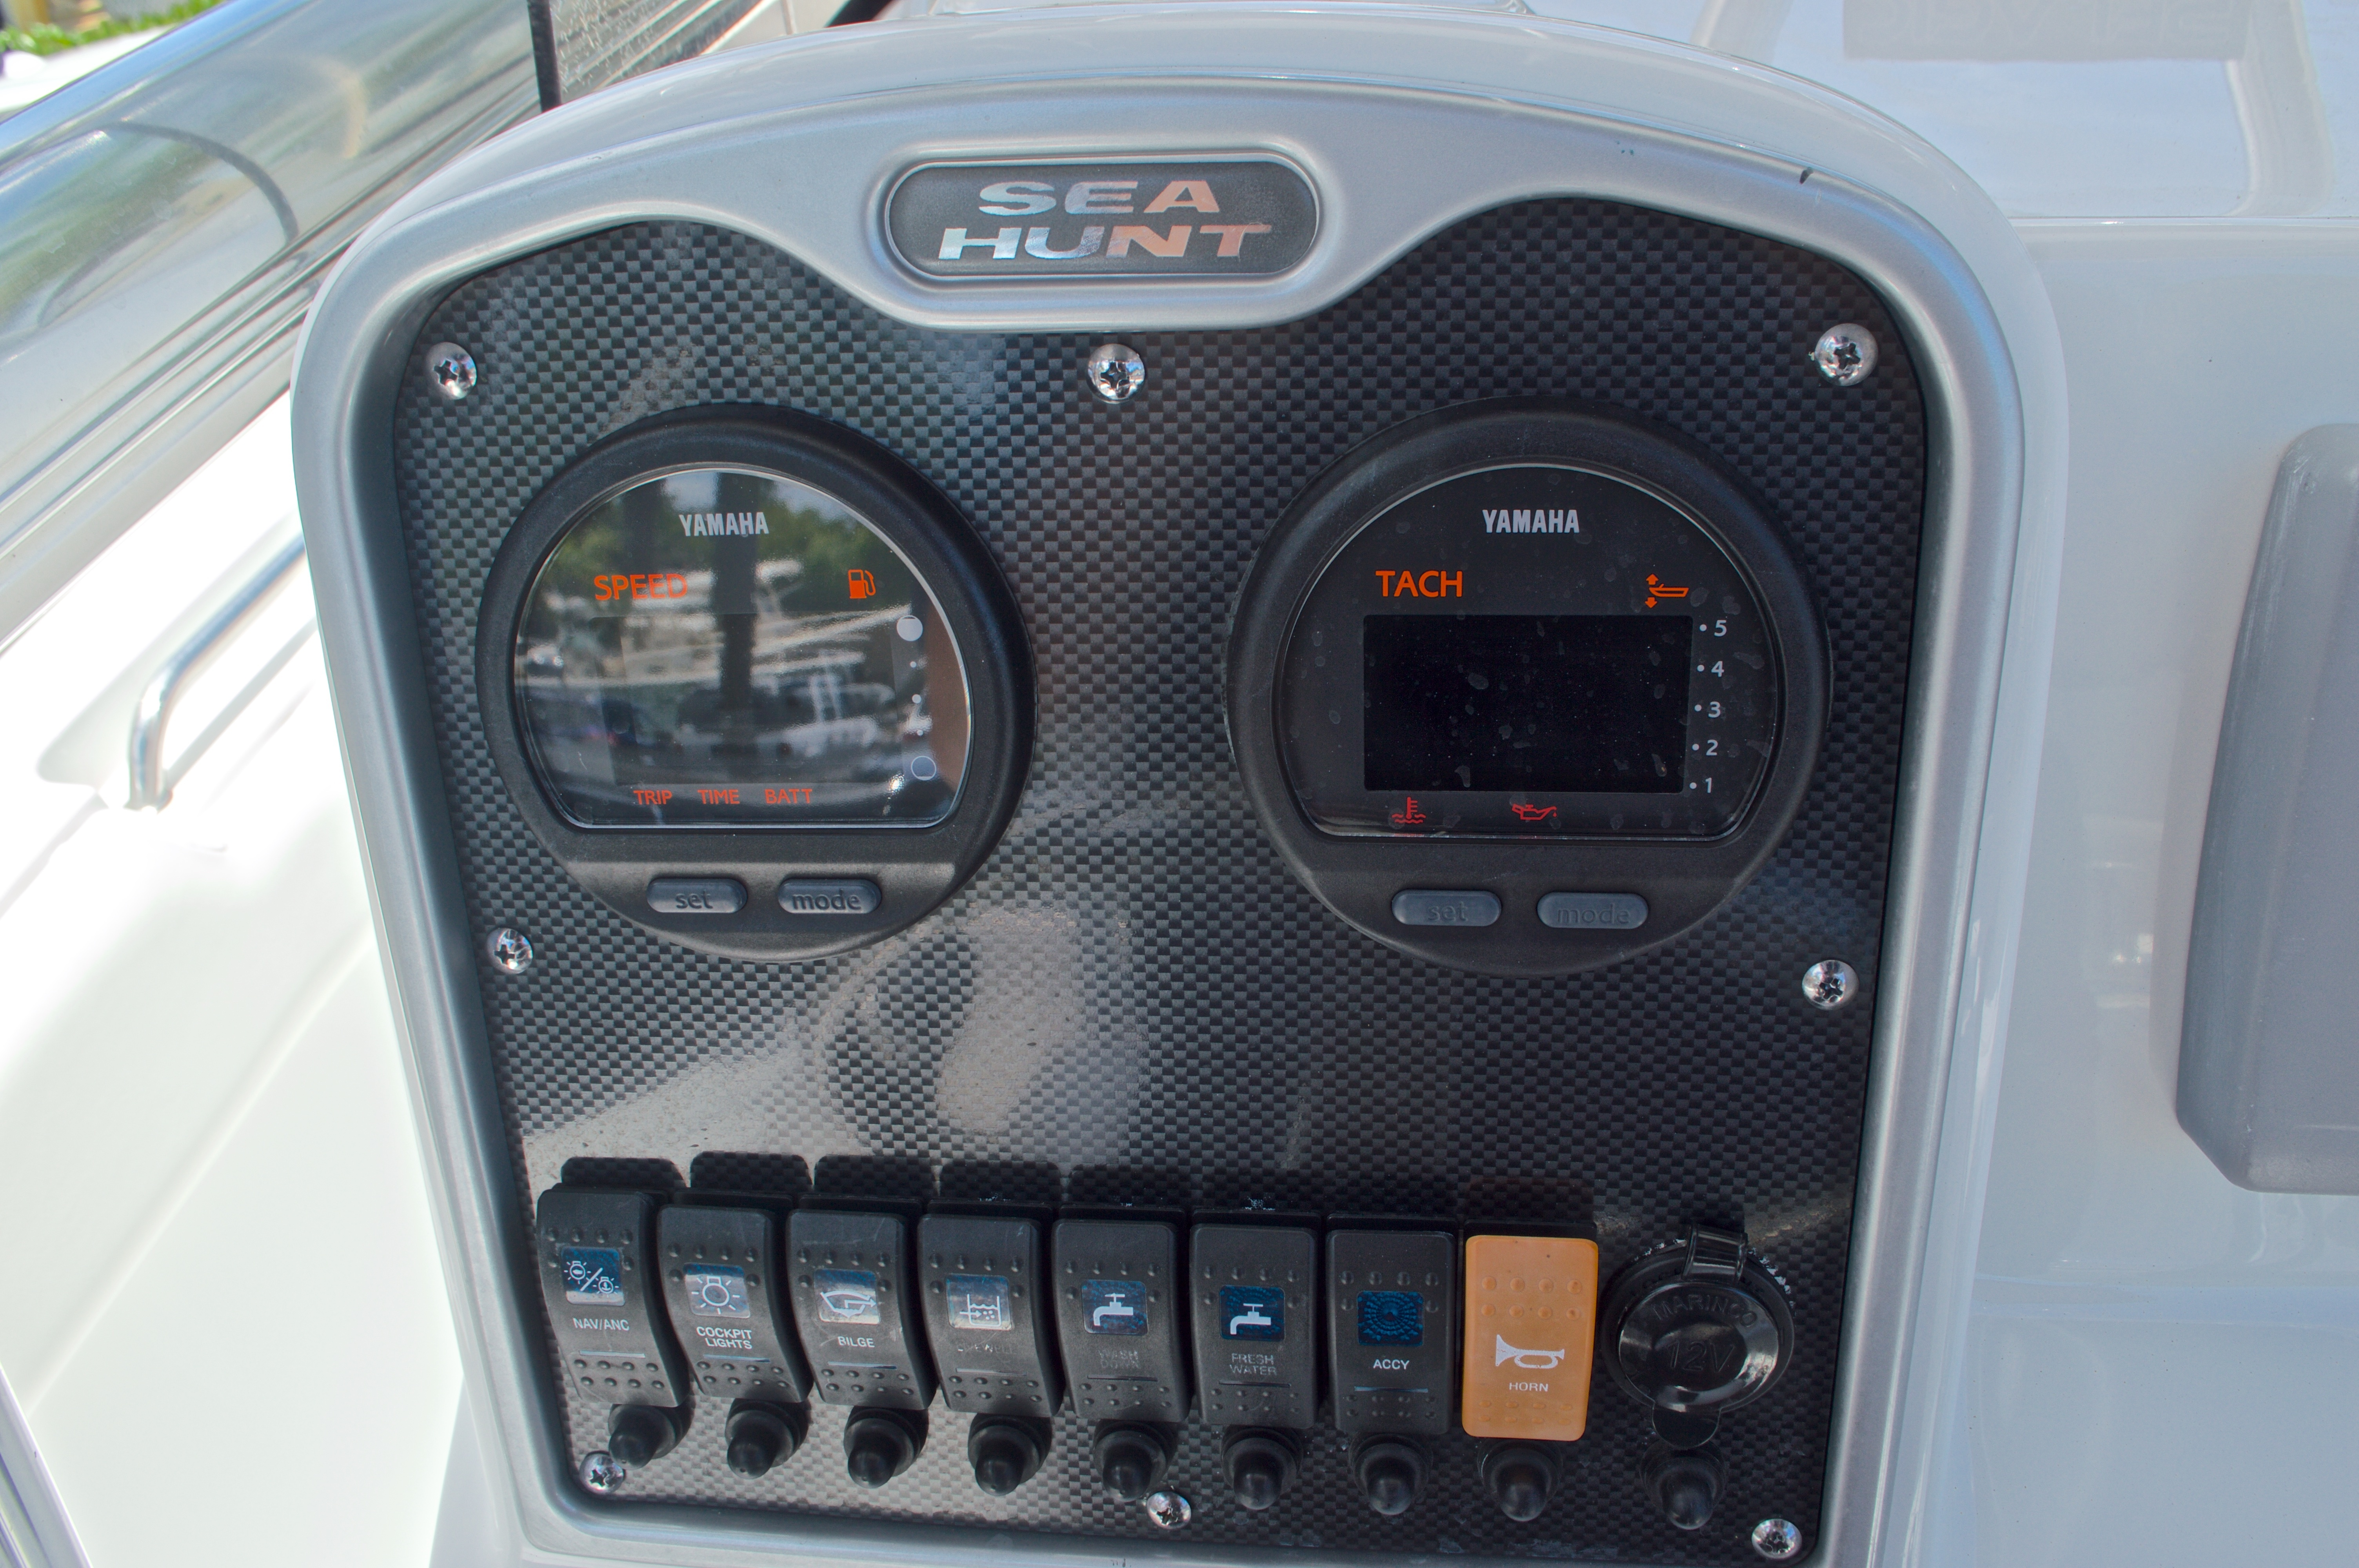 Thumbnail 29 for Used 2013 Sea Hunt 210 Triton boat for sale in West Palm Beach, FL